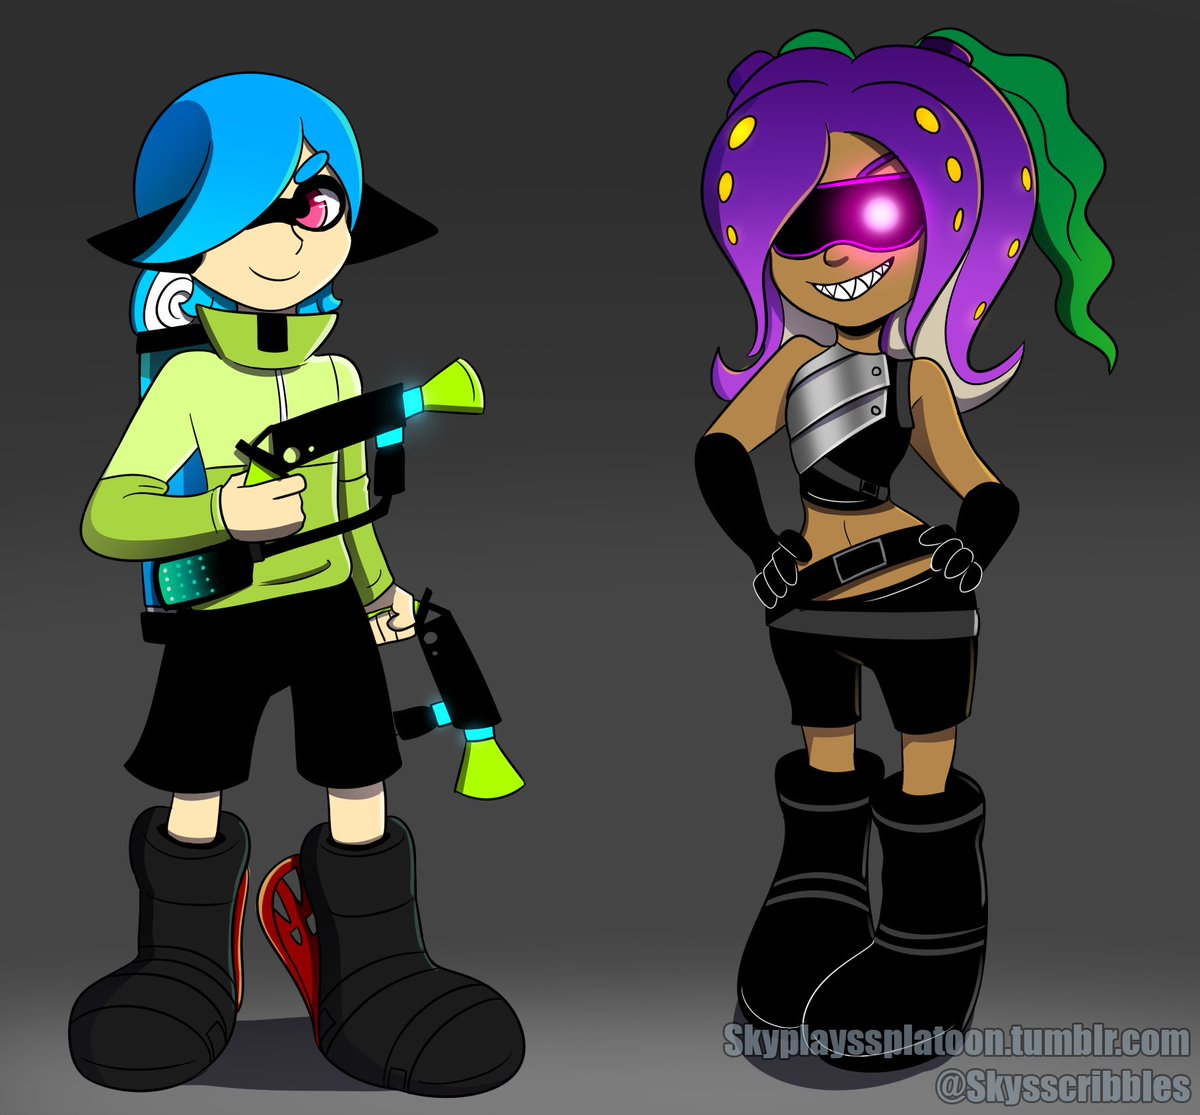 Commission work for a pal on Tumblr in honor of Splatoon 2! #Splatoon2 #Inkling #Octoling  #Commission <br>http://pic.twitter.com/rIwSio7mzZ